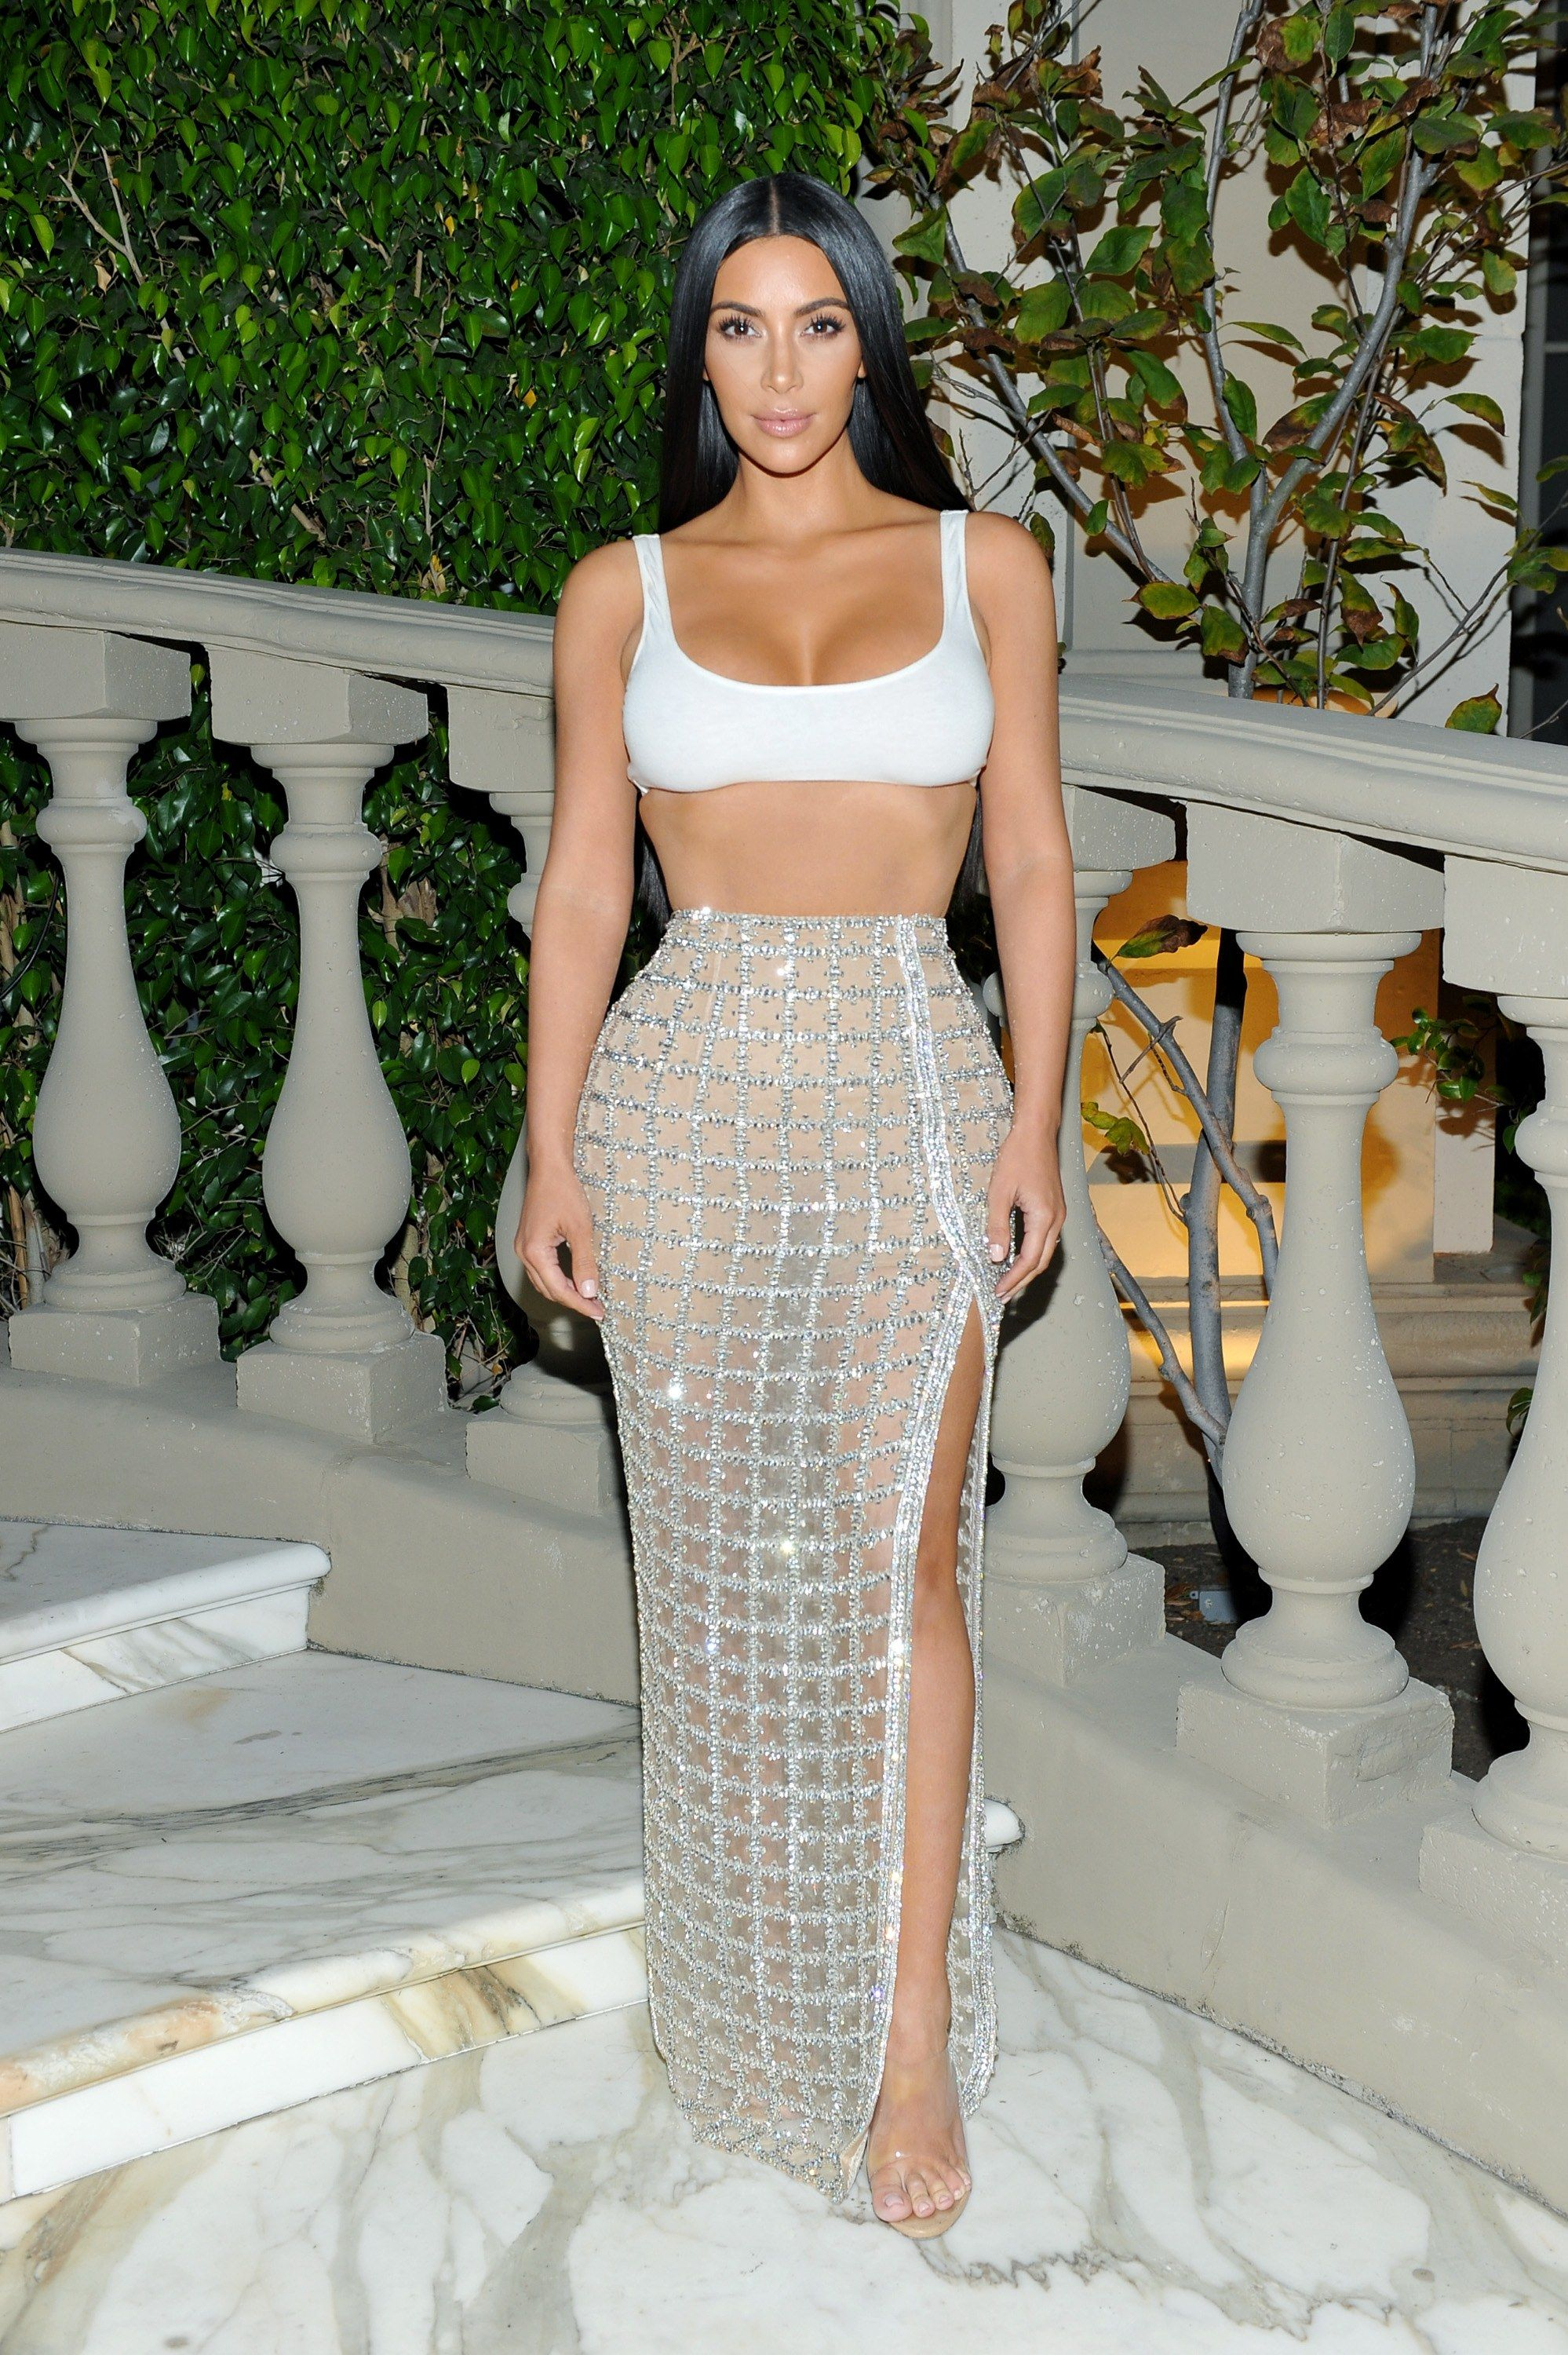 Kim kardashian west turns a sports bra yes into a chic party top